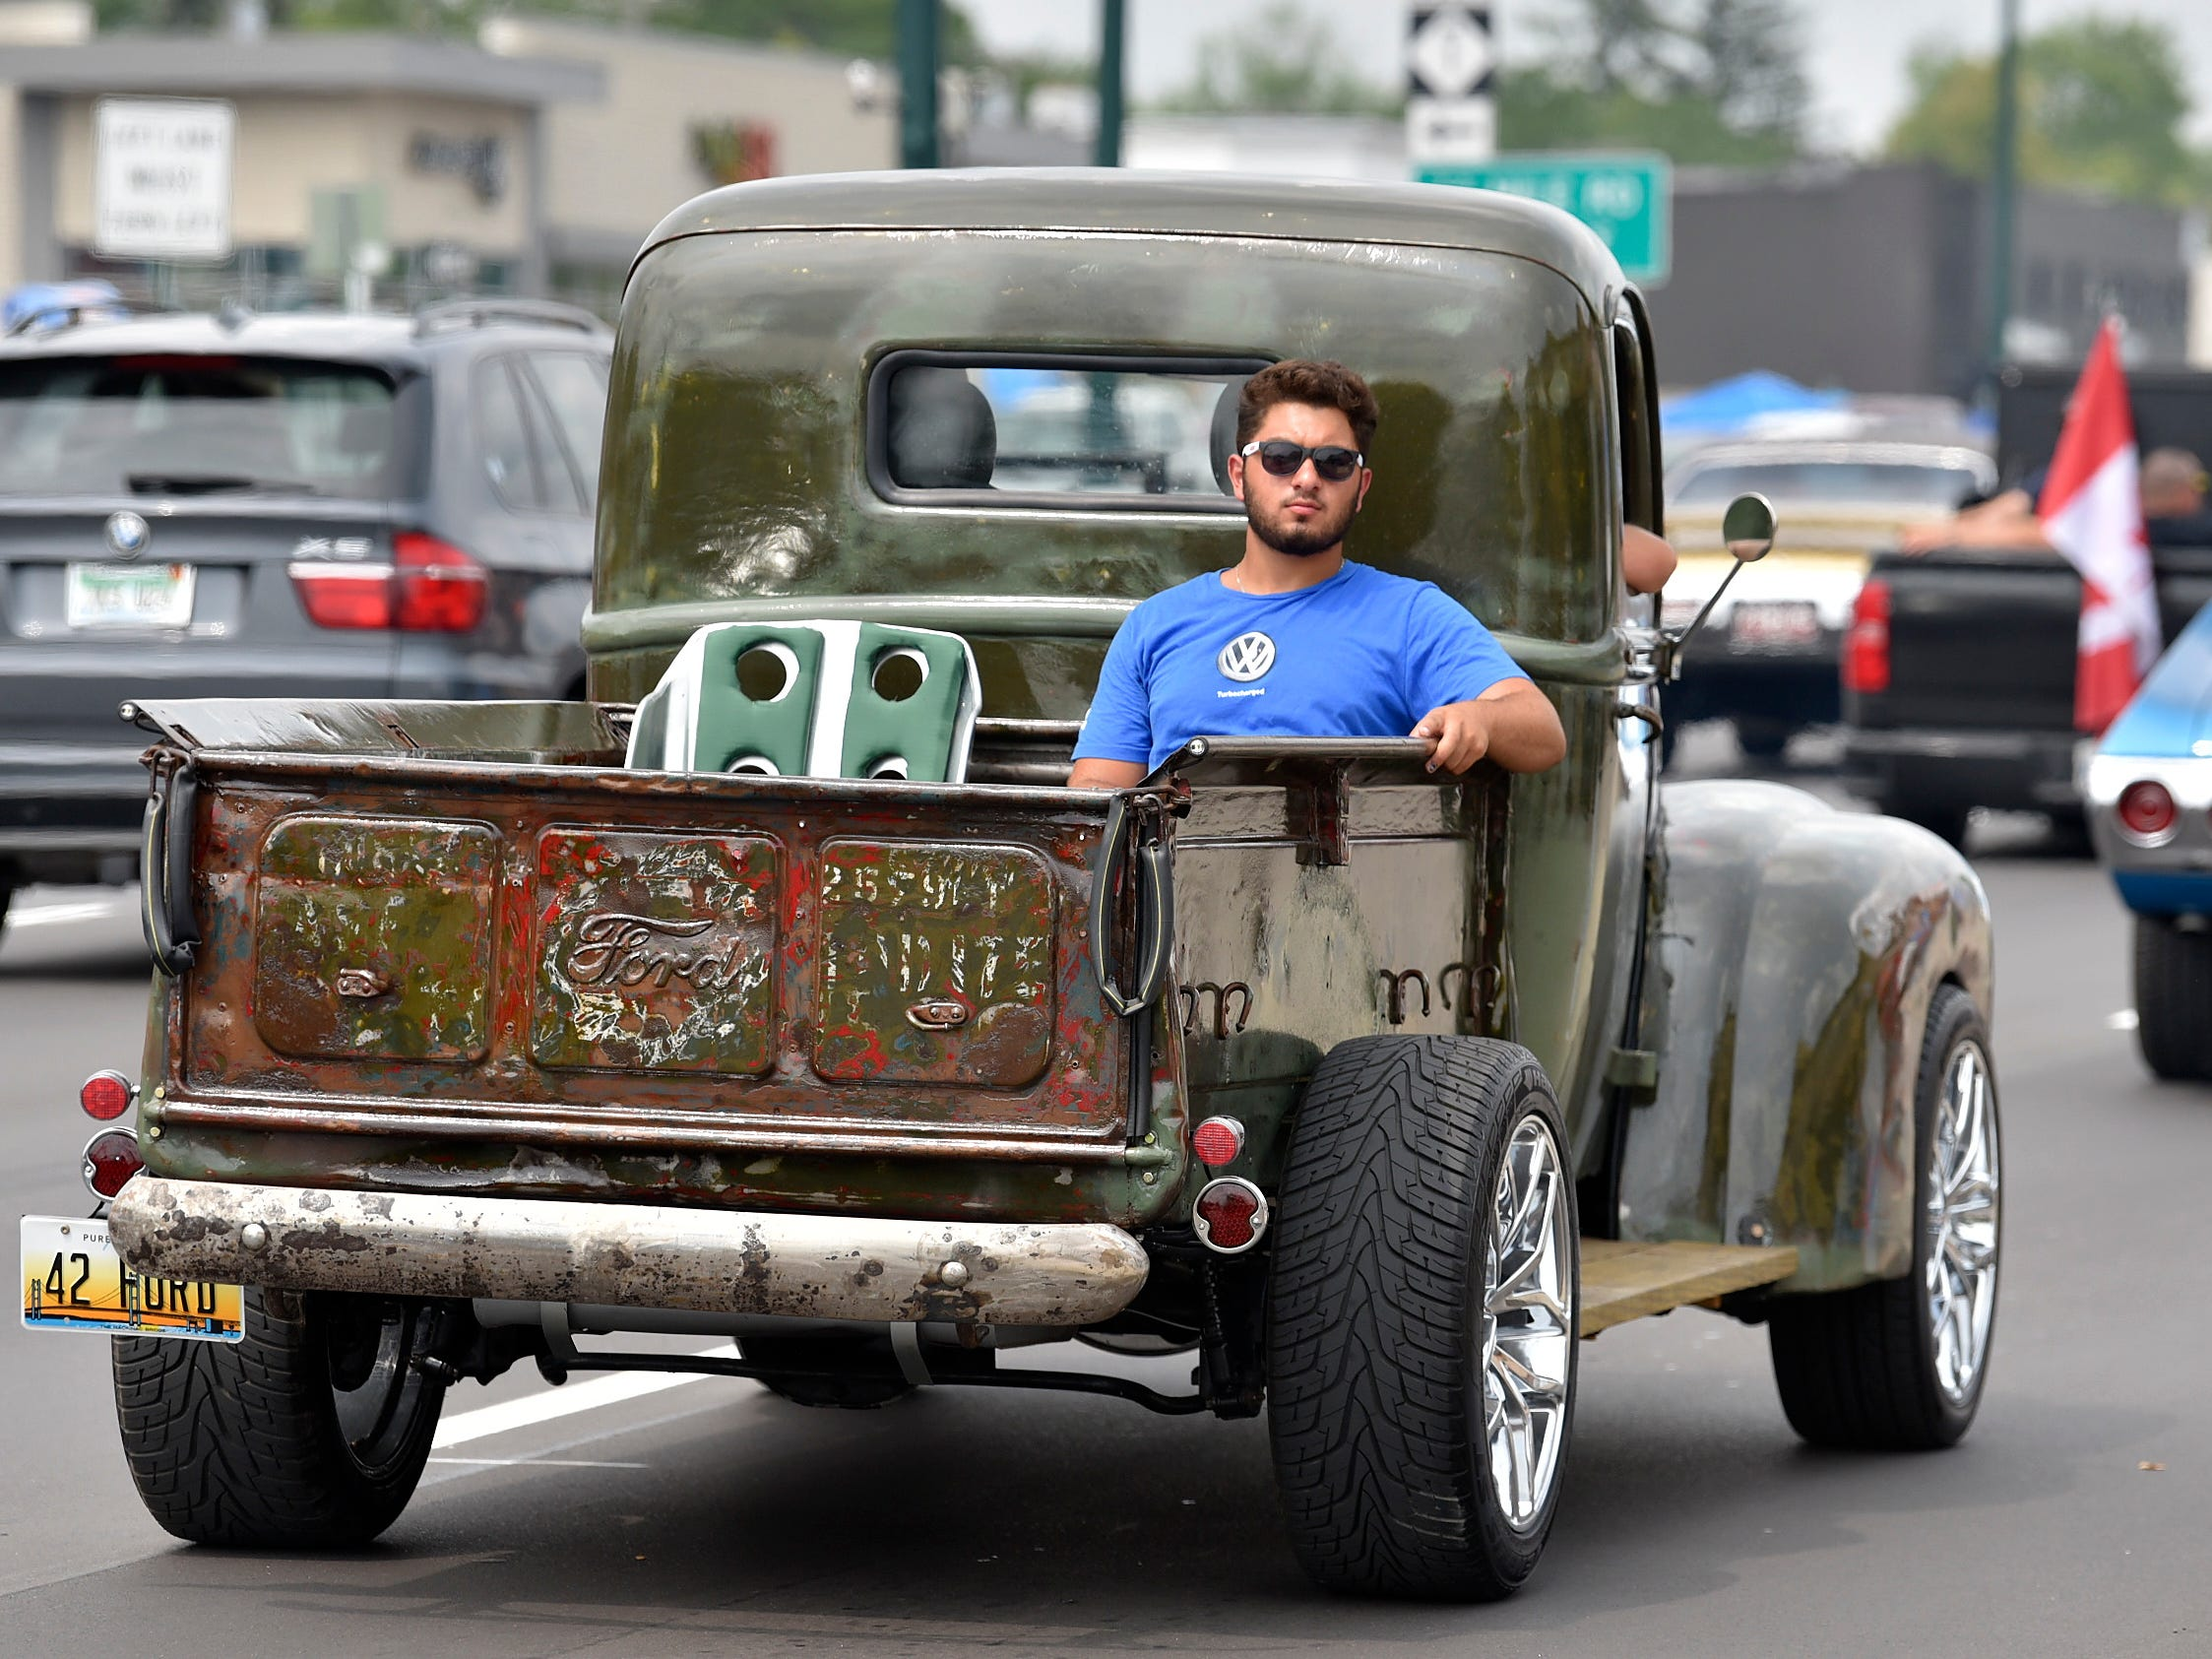 A cruiser rides in the bed of this 1942 Ford pick up truck.